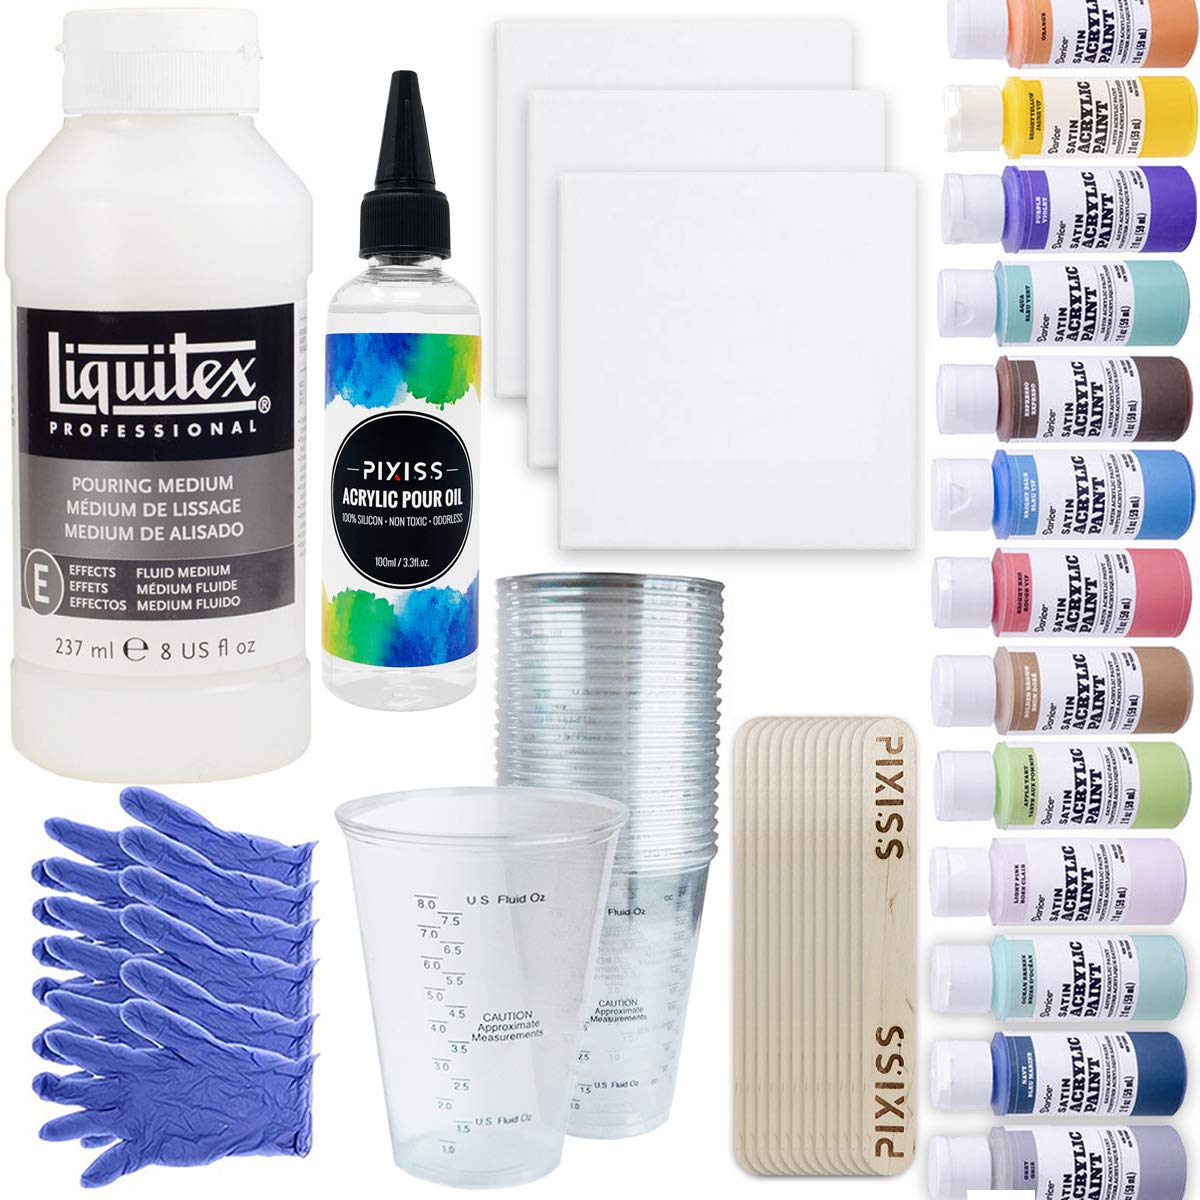 Pouring Bundle - Liquitex Pouring Medium 8-Ounce, Cups, 16x 2-Ounce Acrylic Paints, 3X 5-inch Canvases, Pixiss Acrylic Pouring Oil, Mixing Sticks, Gloves, Complete Kit for Paint Pouring by GrandProducts